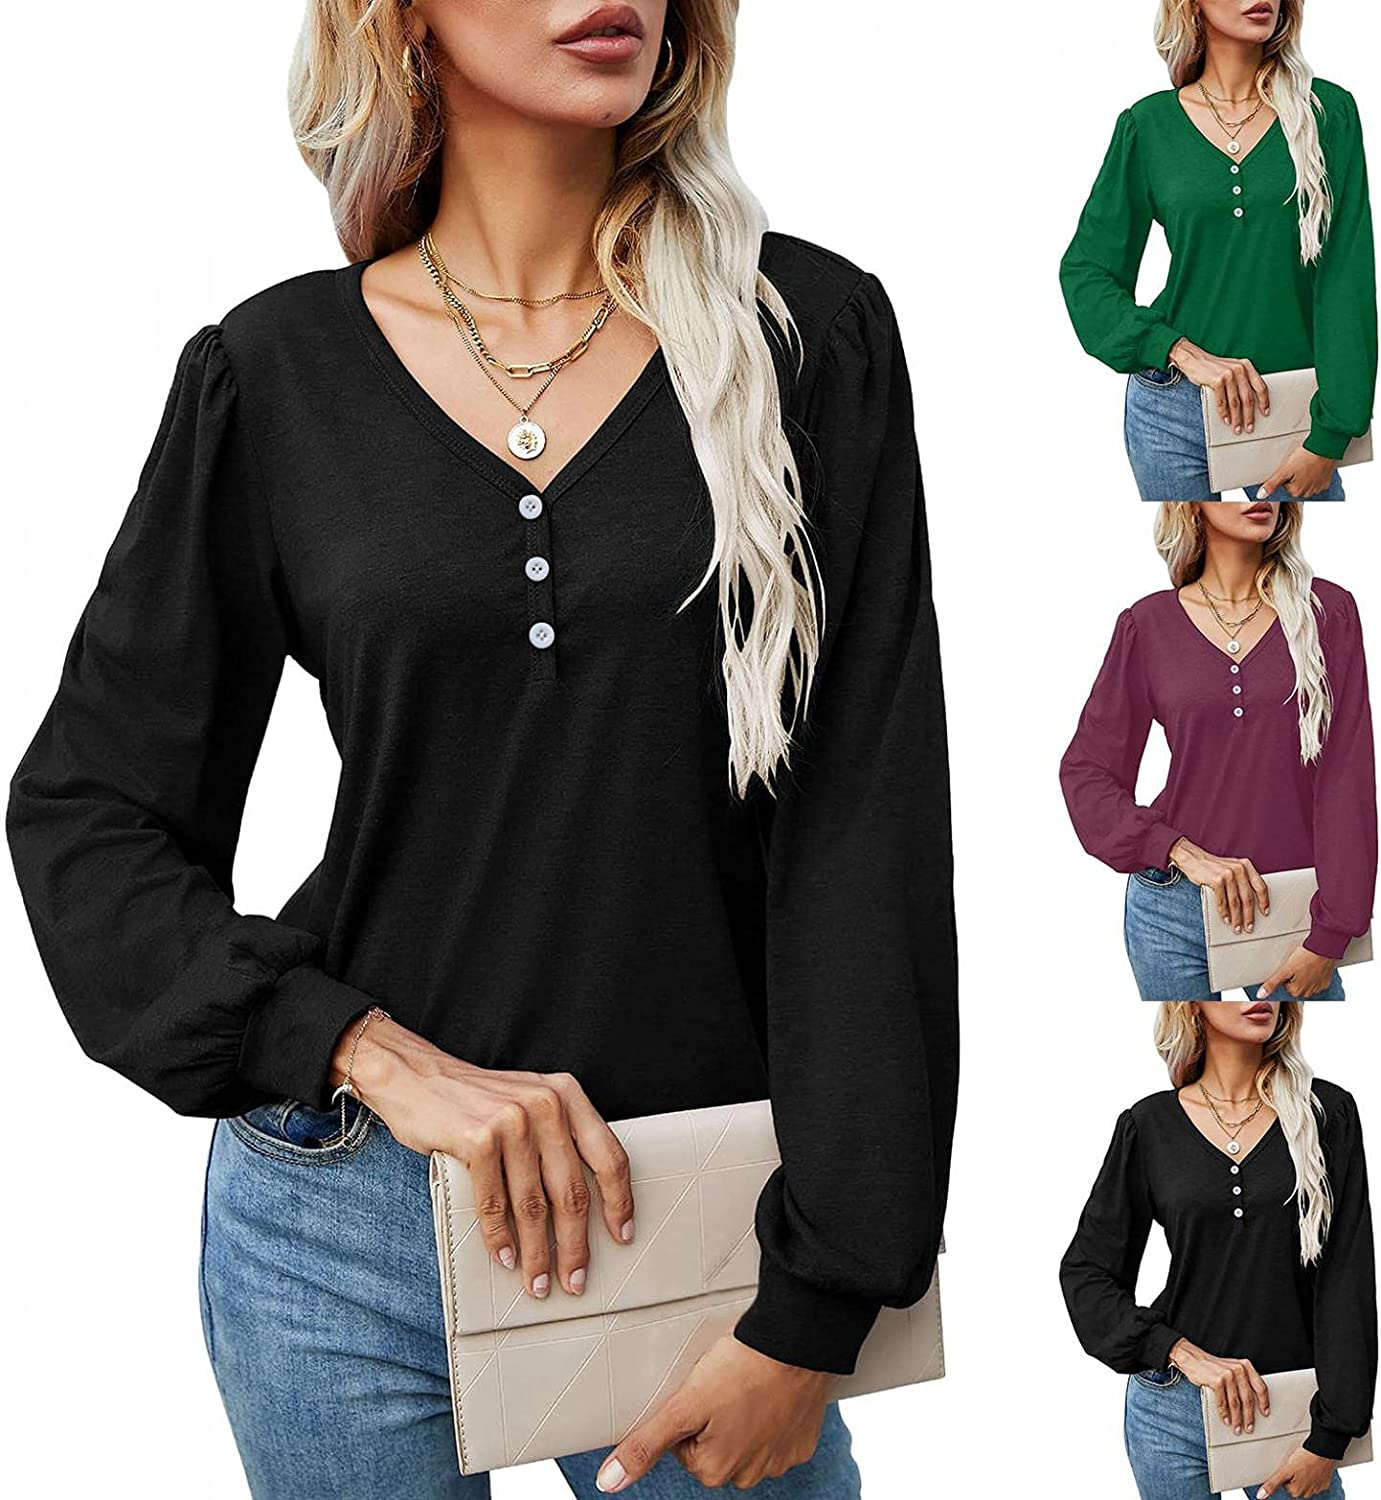 lucyouth Womens Puff Long Sleeve Tunic Tops Button Up Flowy Casual Solid Basic Fall Loose Fit V Neck T Shirt Blouse